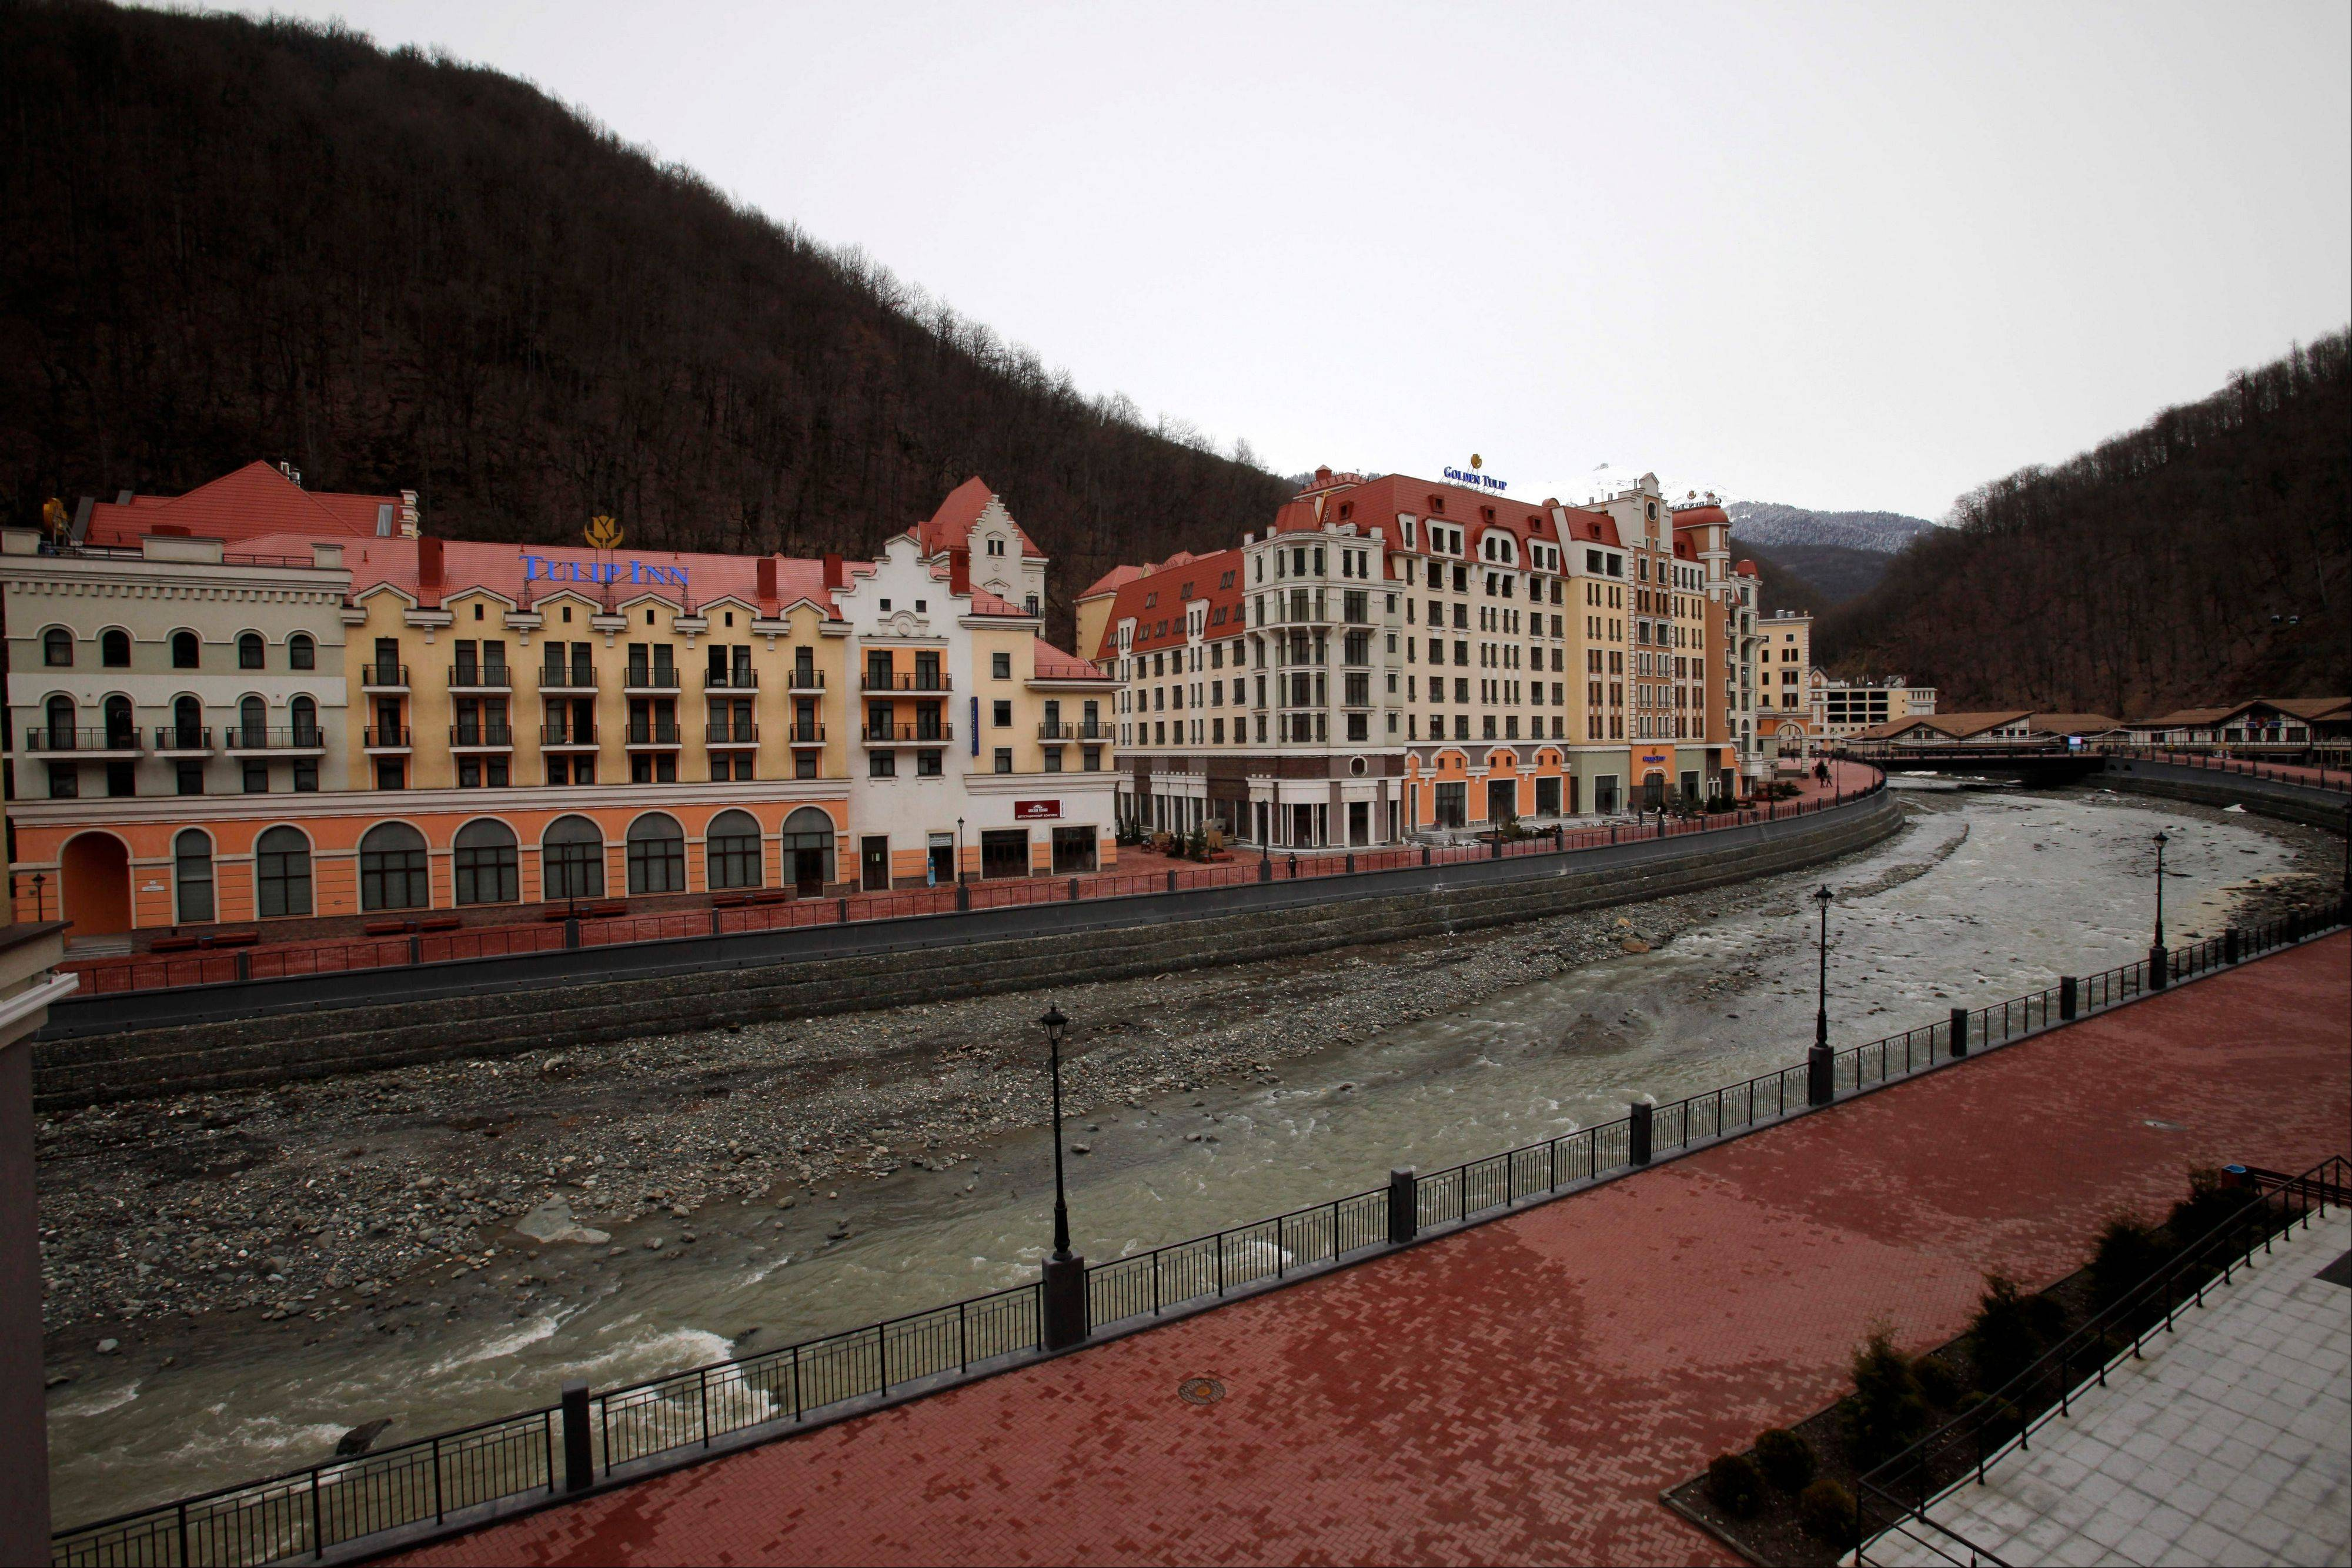 Newly built hotels to accommodate Olympic tourists sit along a river in Krasnaya Polyana near Sochi, Russia.